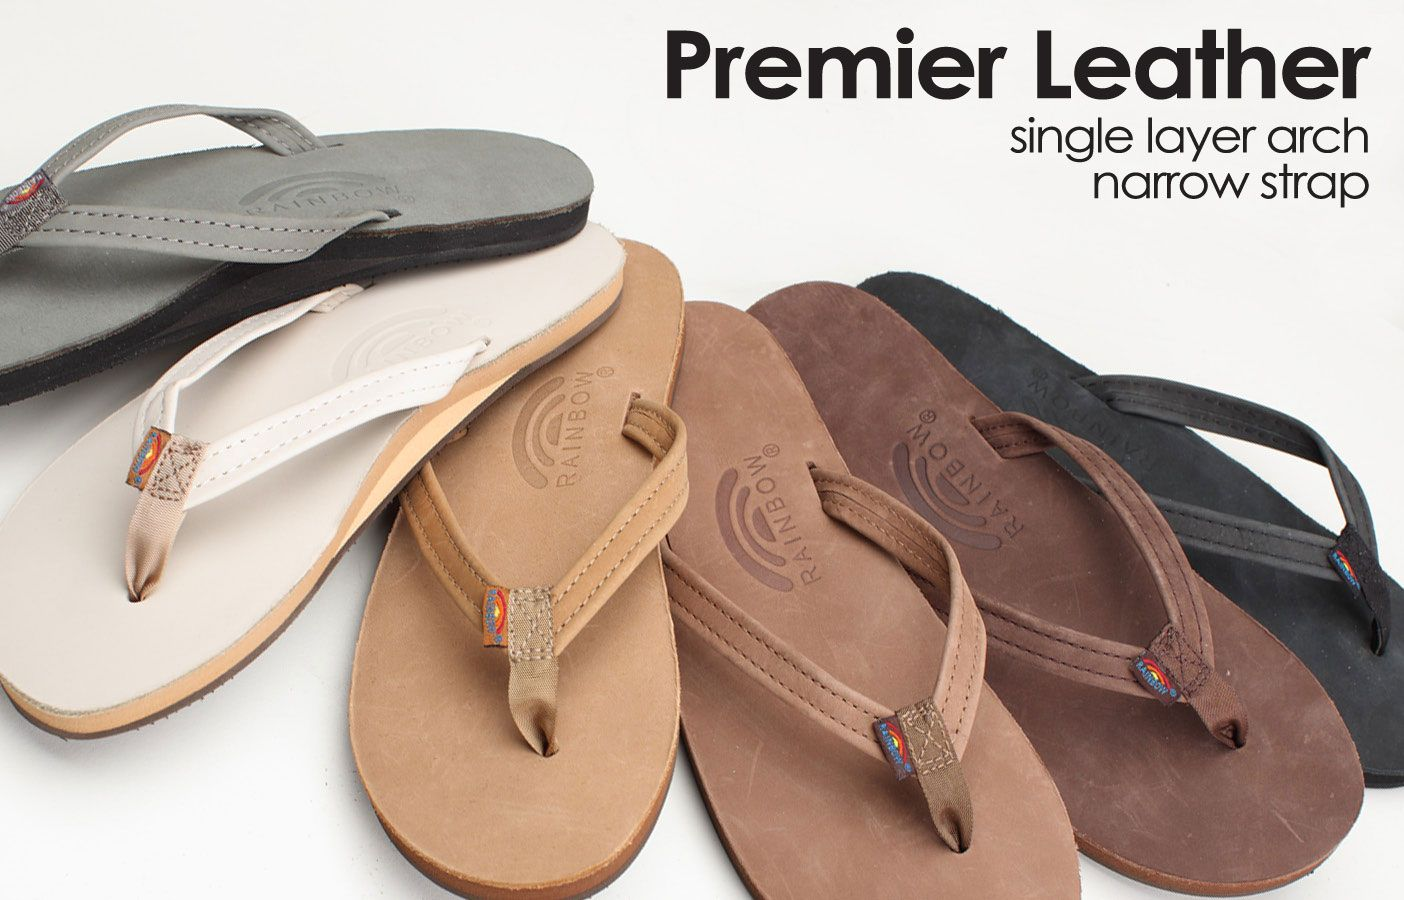 43444115690a2c Premier-Leather-Narrow Authentic Rainbow Sandals. I love San Clemente